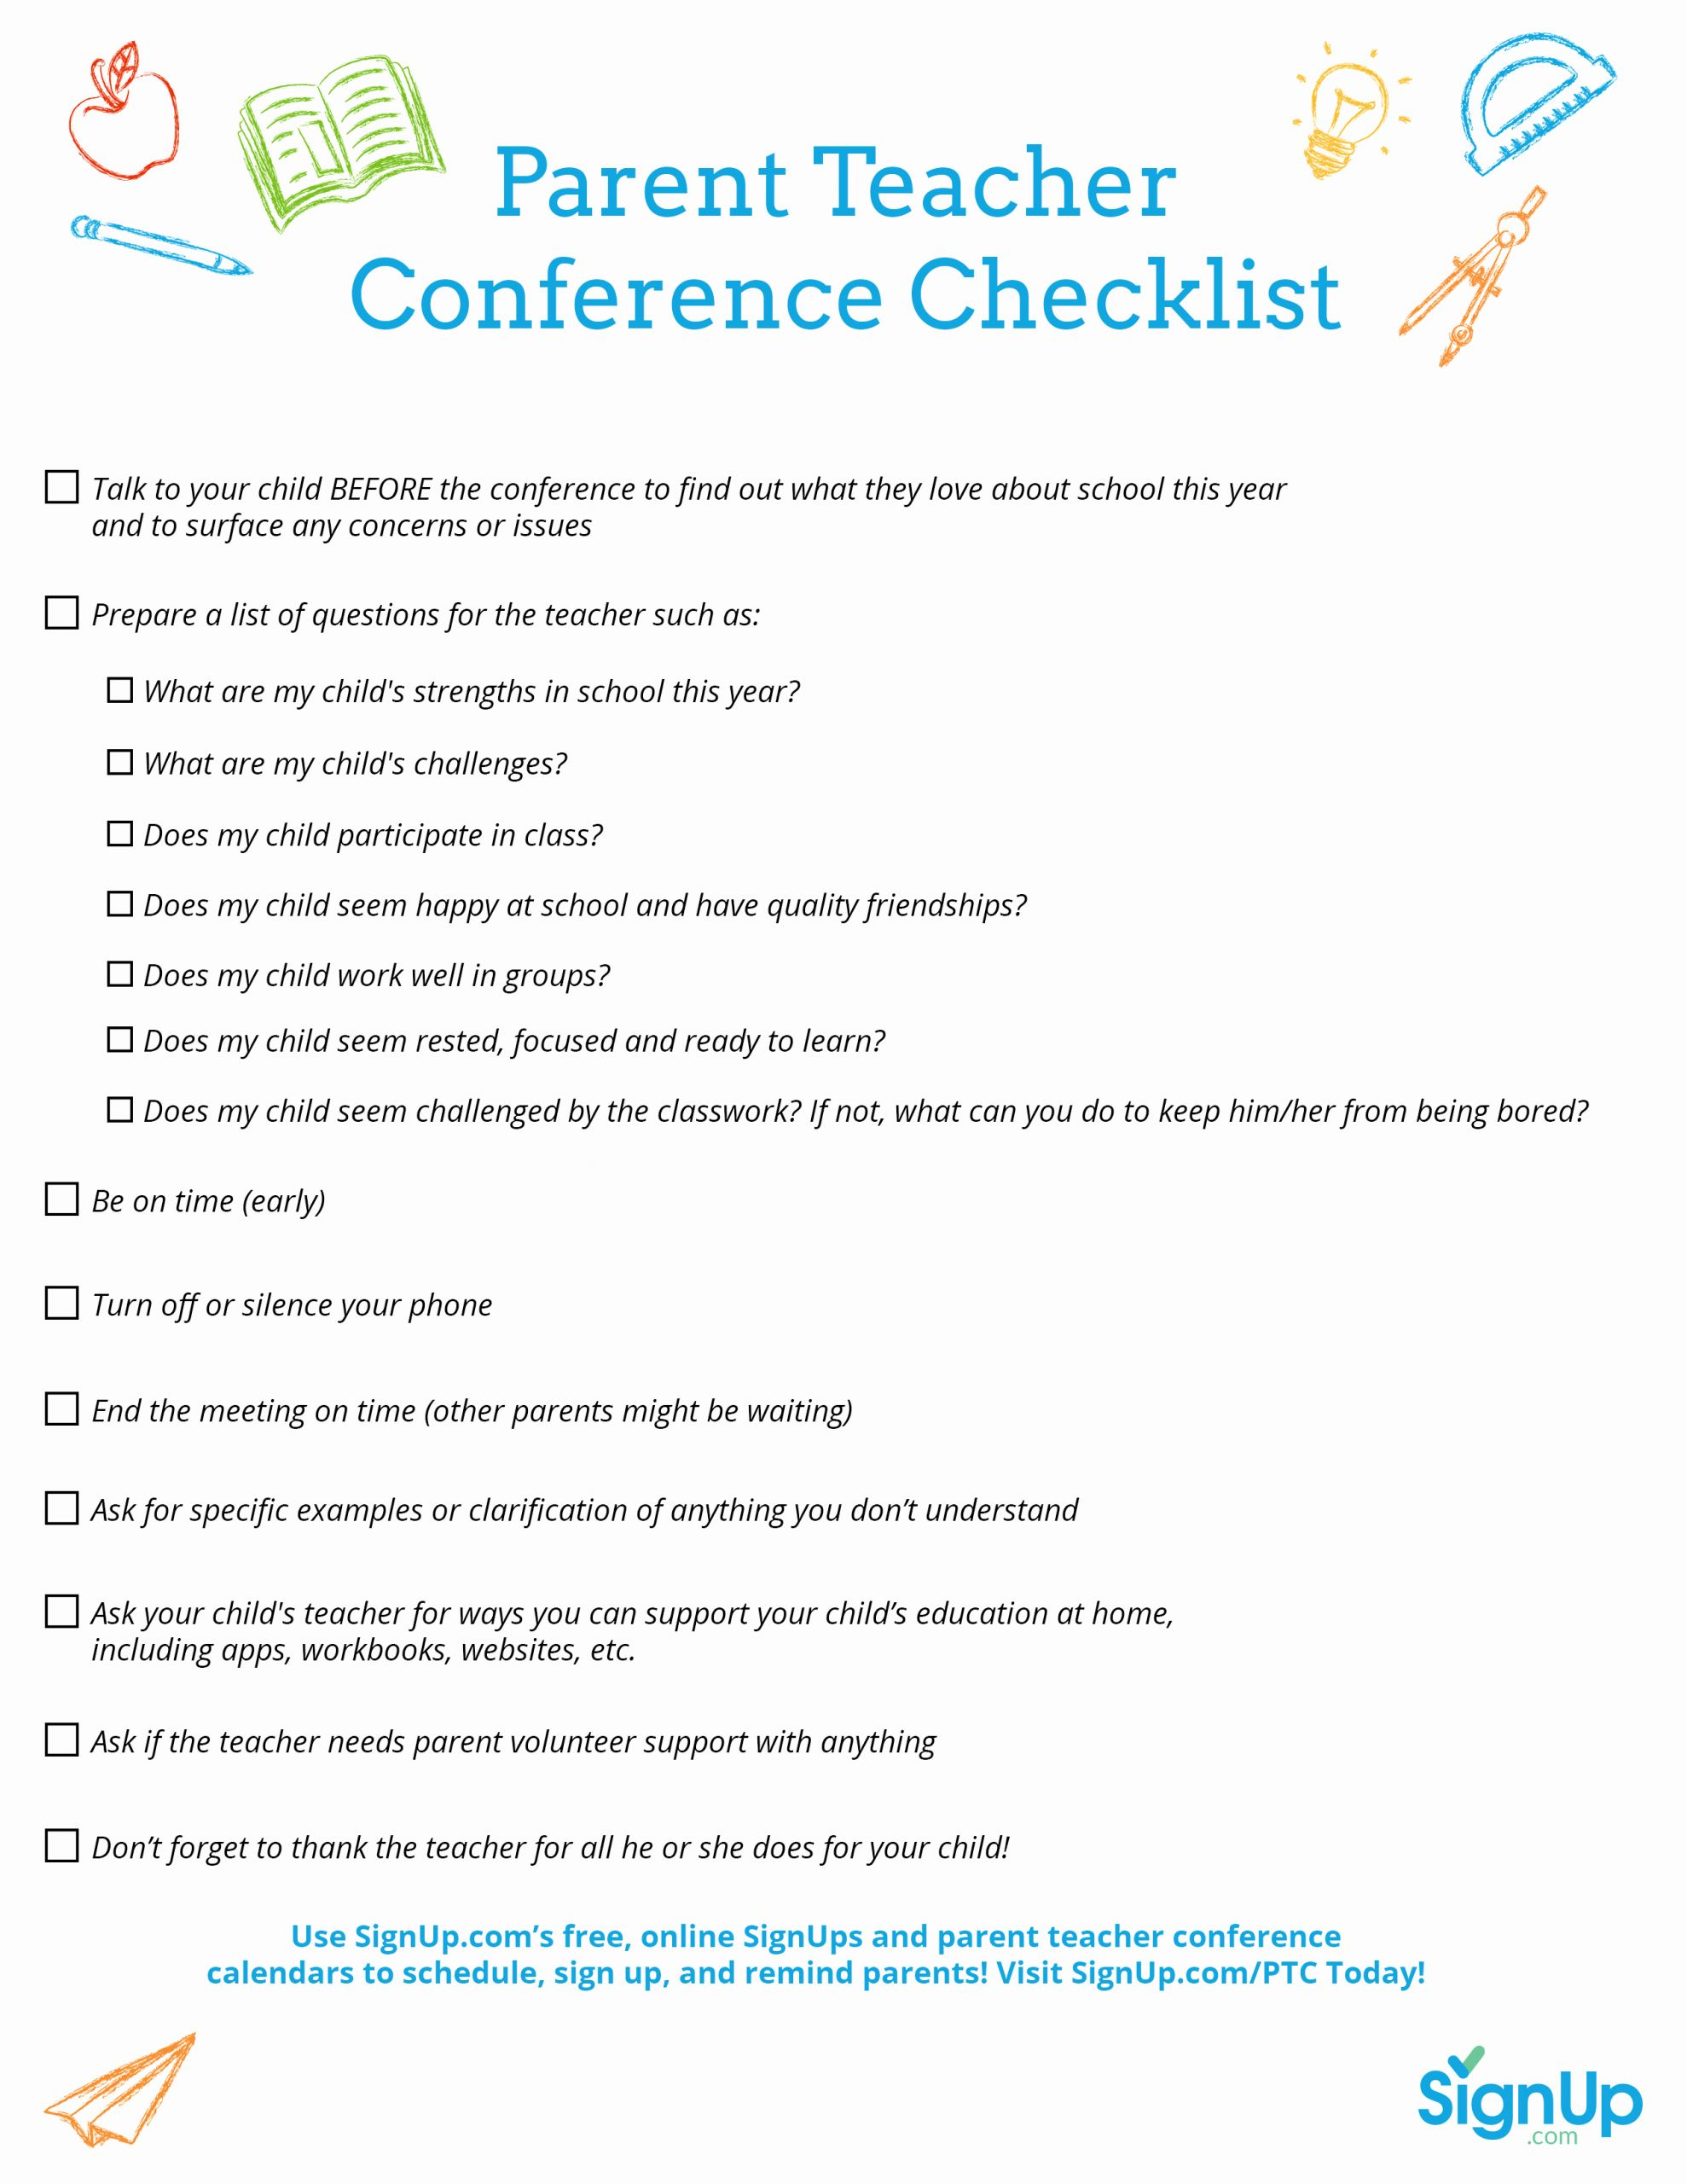 Conference Notes Template for Teachers Fresh Printable Checklist for Parent Teacher Conferences